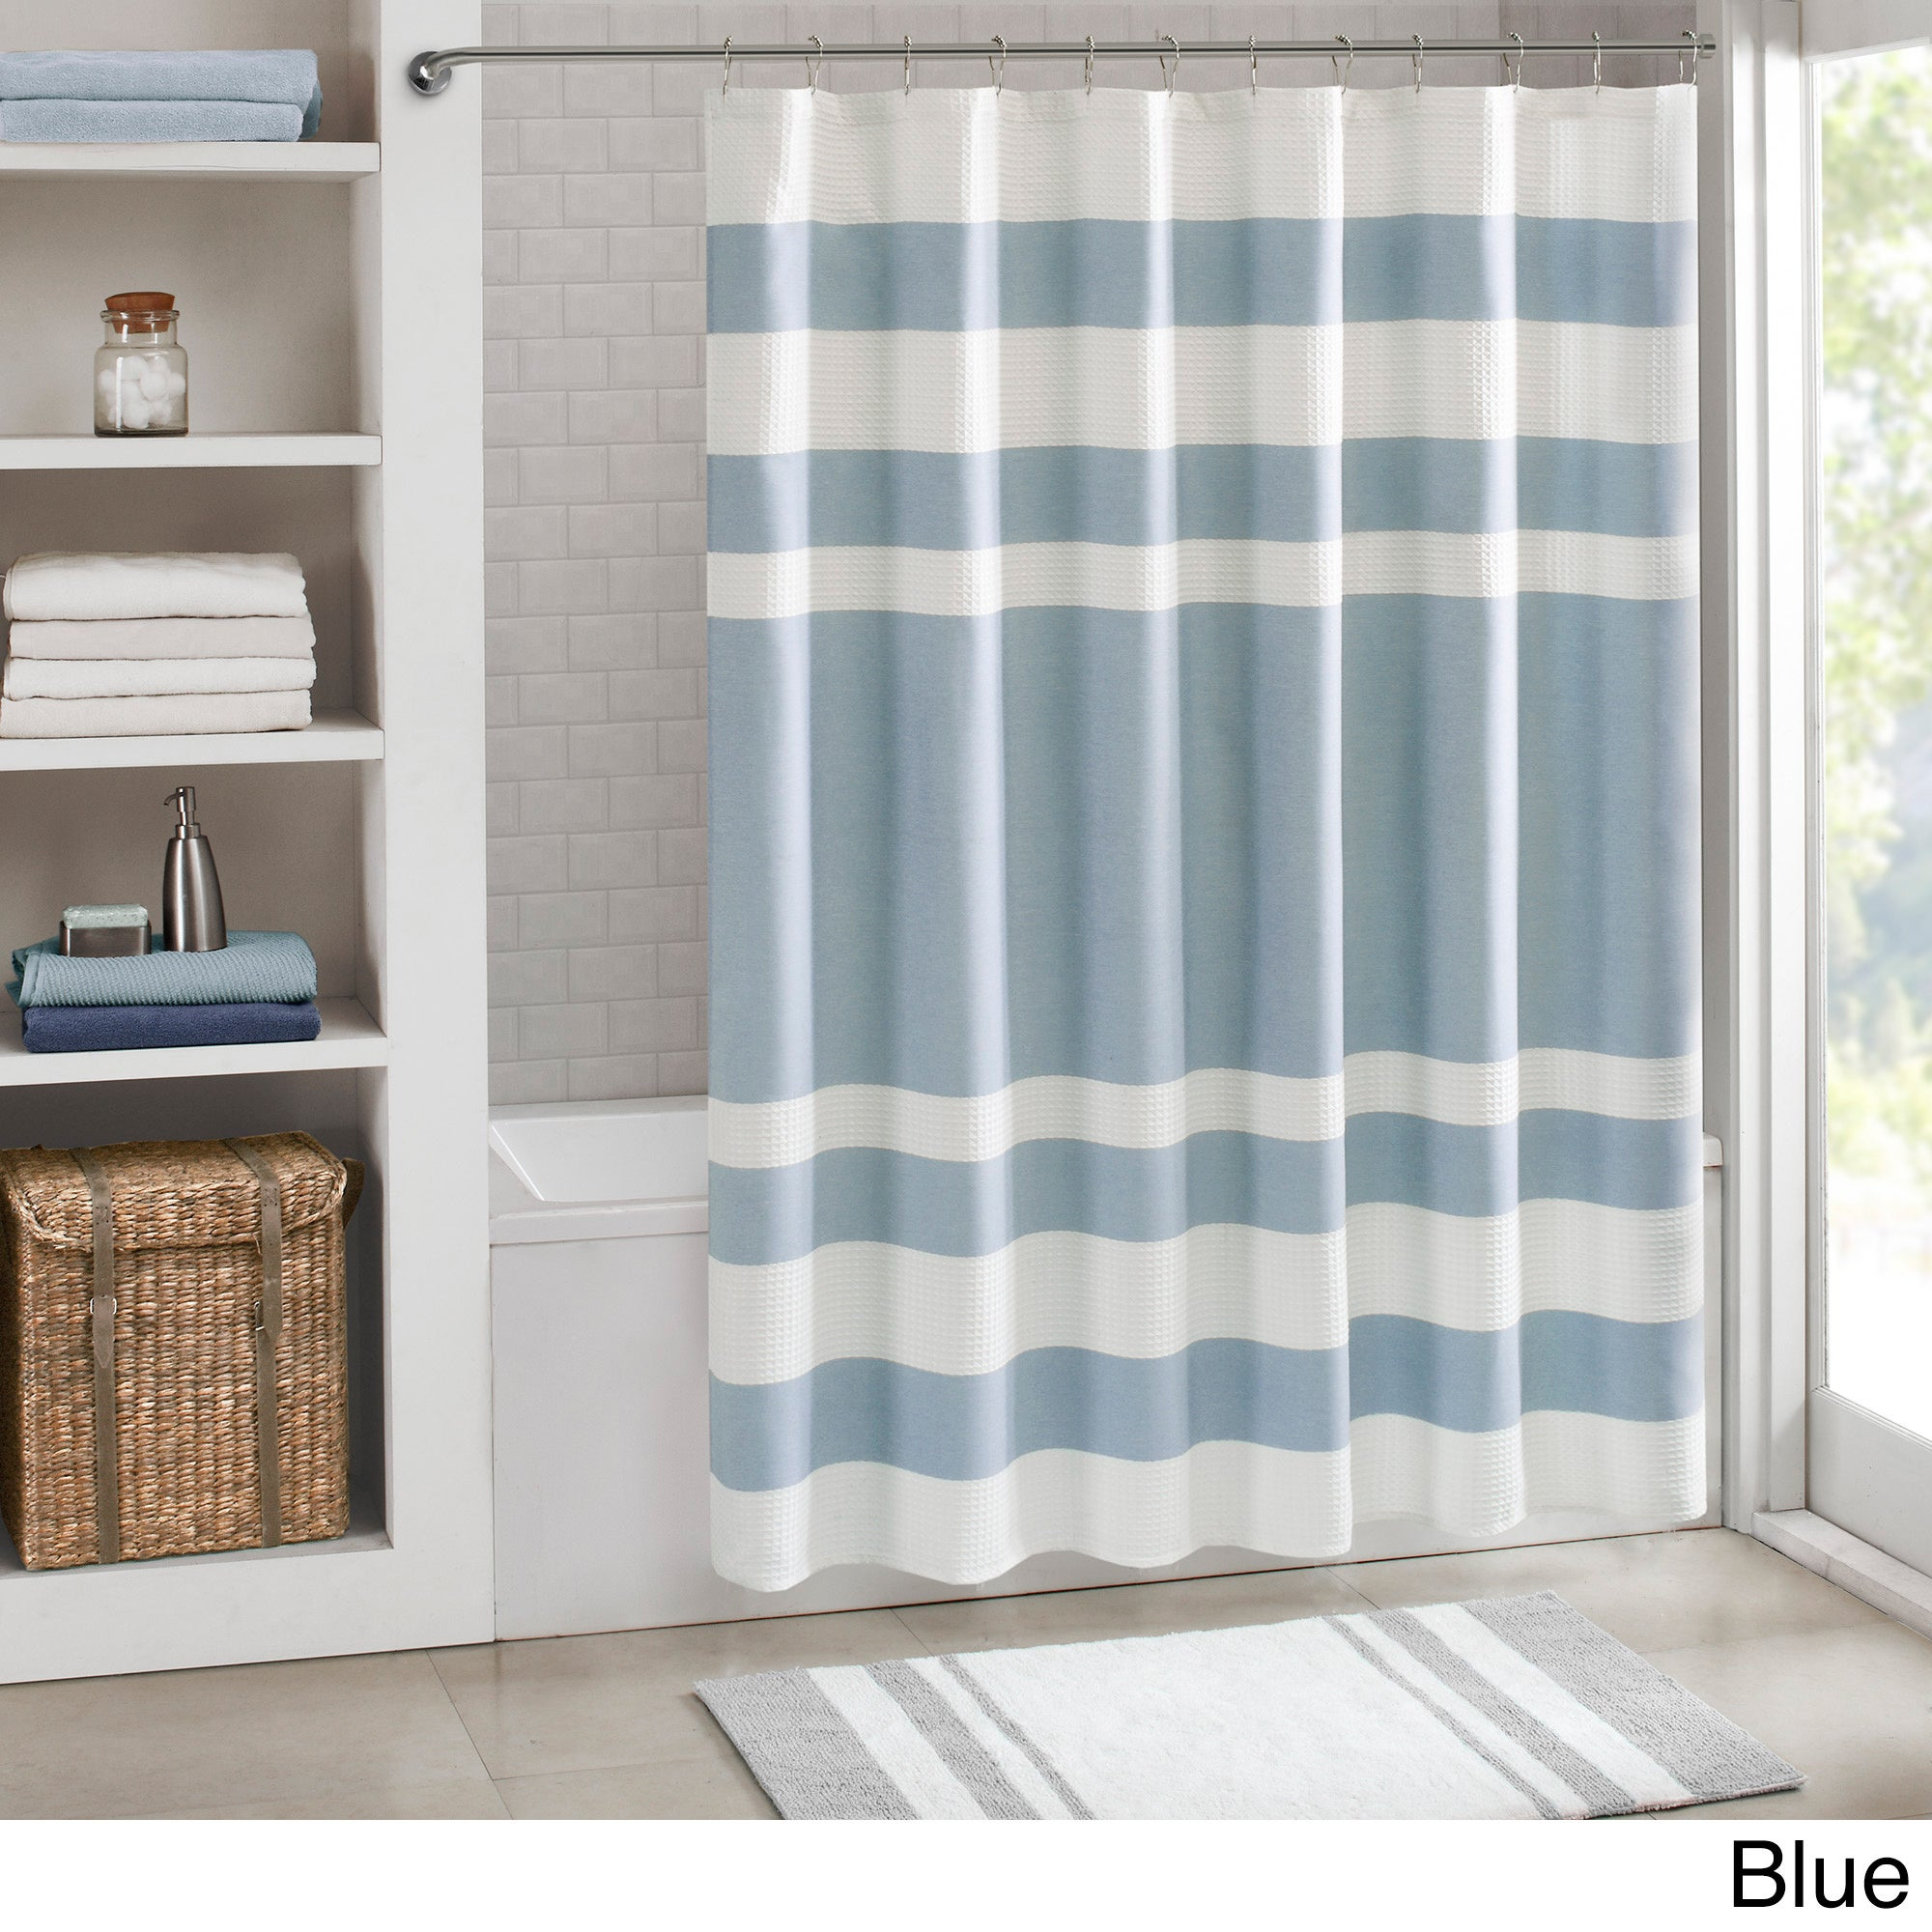 machine curtain water dp resistant mildew polyester curtains bacterial bathroom shower repellent wimaha fabric com washable amazon liner anti